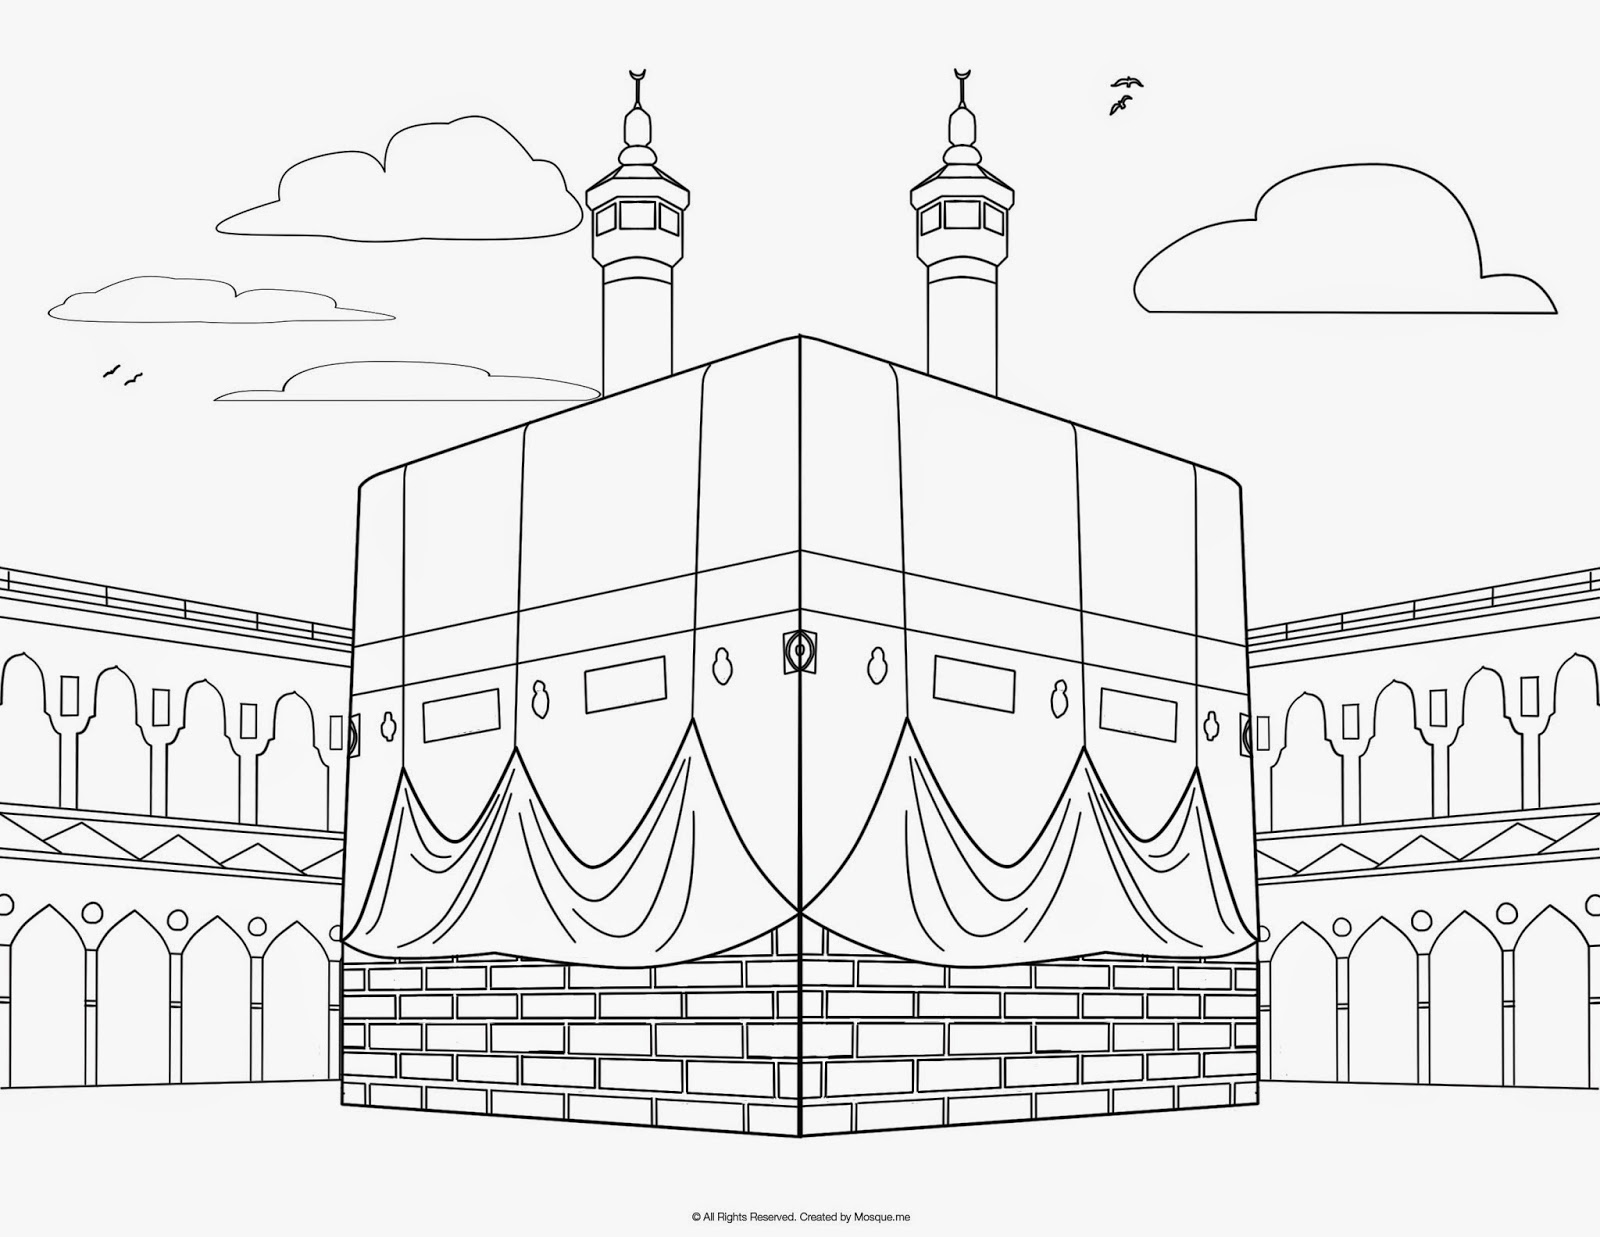 hajj ihram coloring pages - photo #7